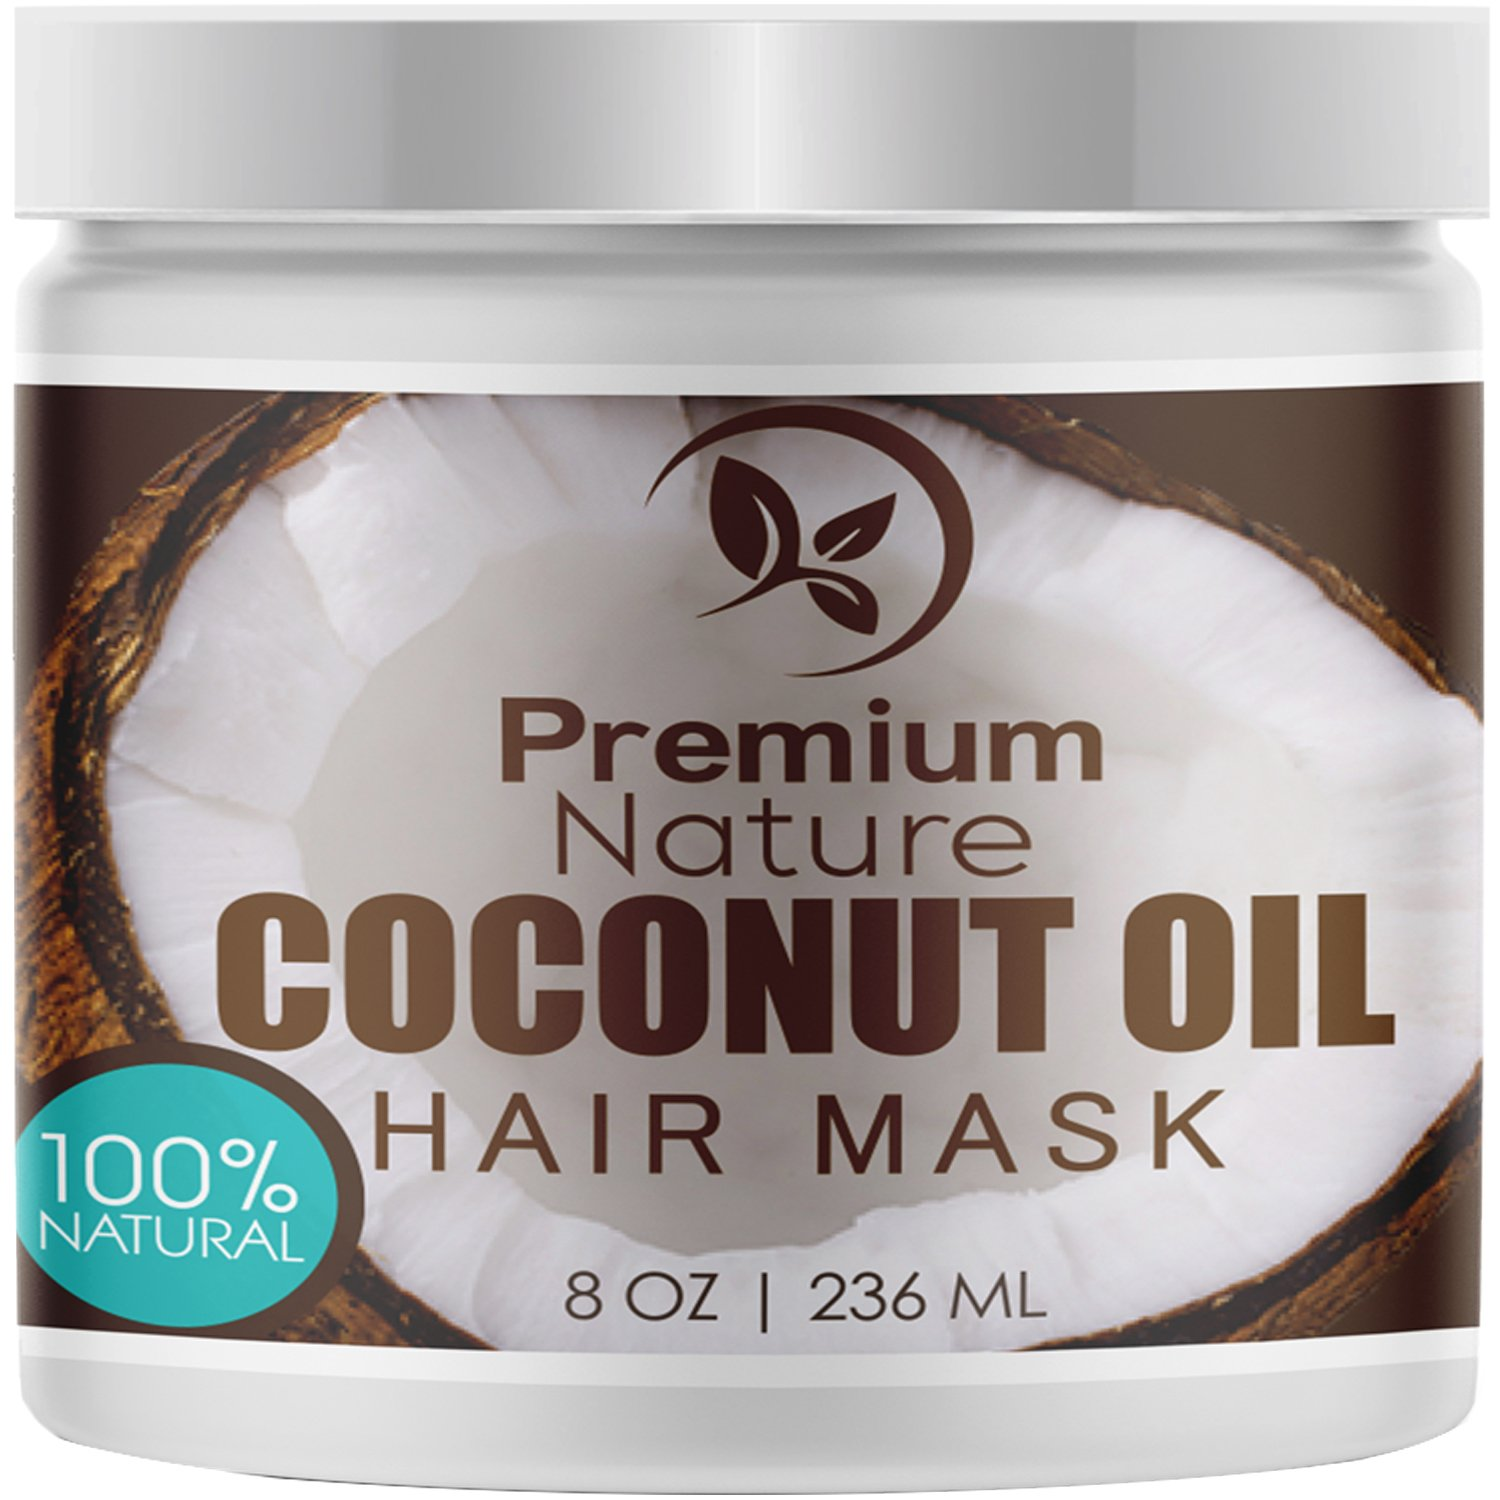 Coconut Oil Hair Mask Conditioner - Deep Conditioning Leave-In Hair Treatment for Dry Damaged Hair Care - 100% Natural Moisturizes Repairs Restores & Nourishes - Sulfate Free 8oz by Premium Nature